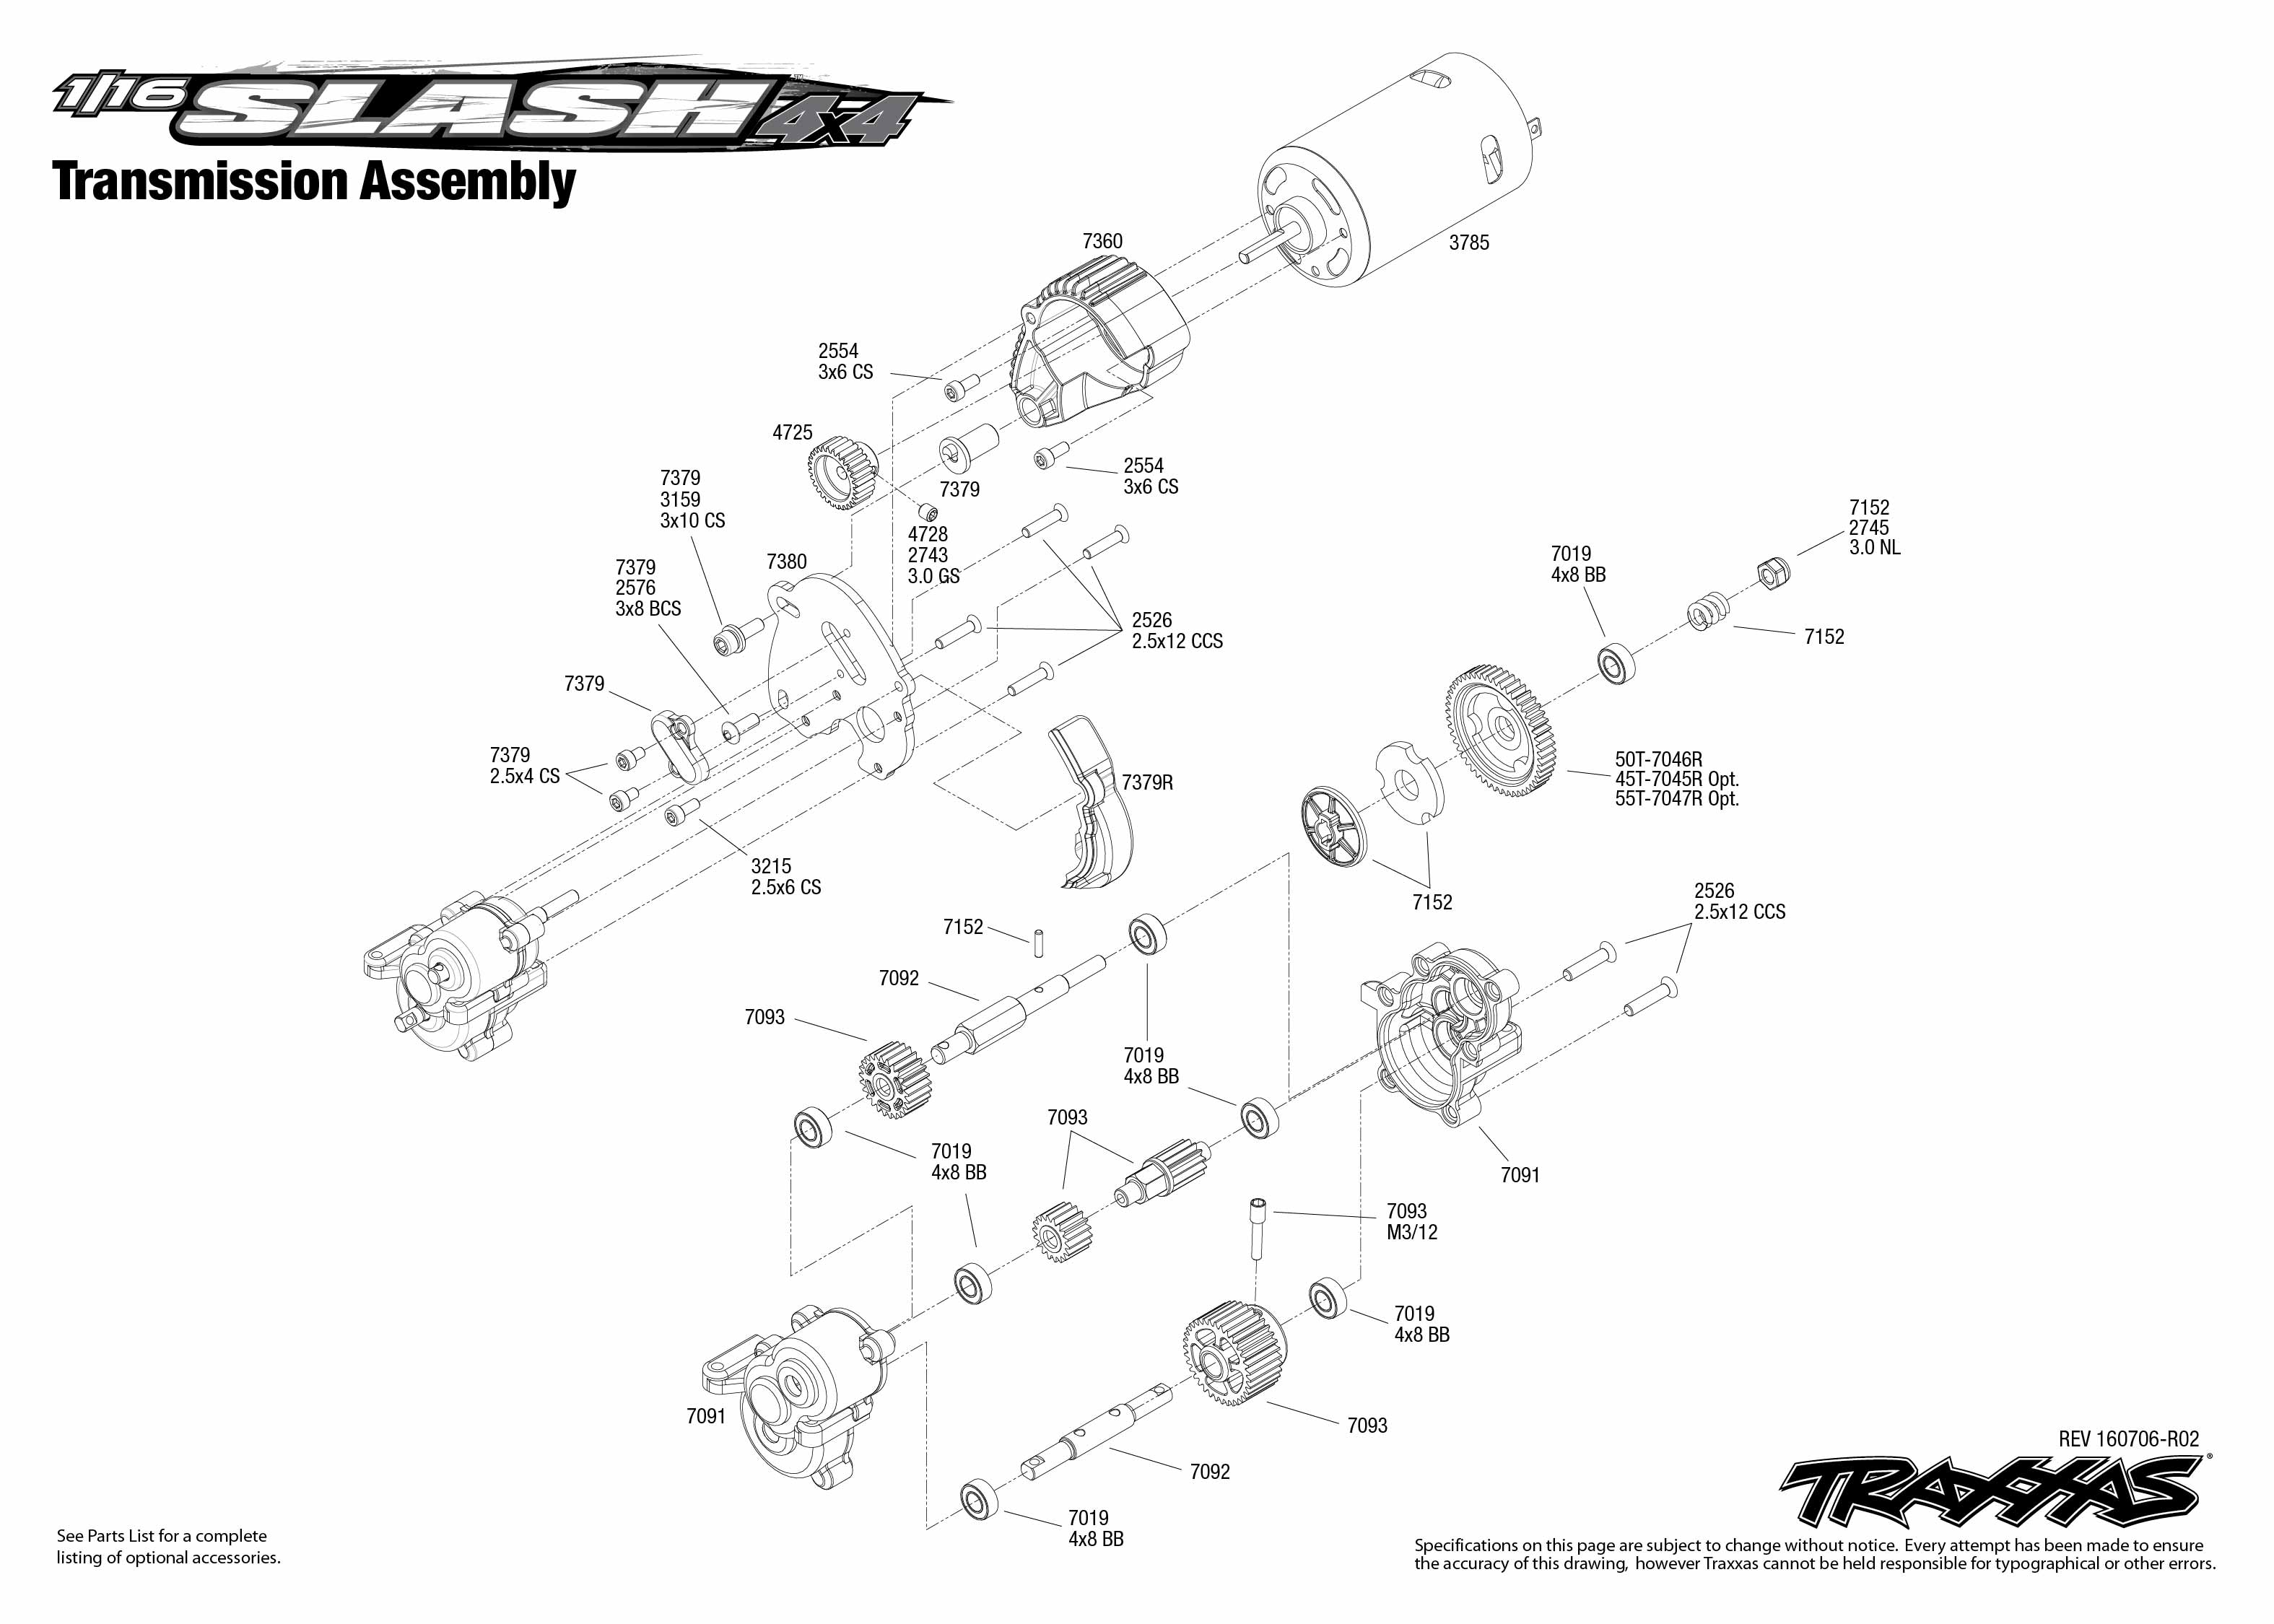 traxxas slash slipper clutch diagram traxxas slipper clutch adjustment   elsavadorla traxxas slash 2wd parts list pdf traxxas slash 2wd parts diagram